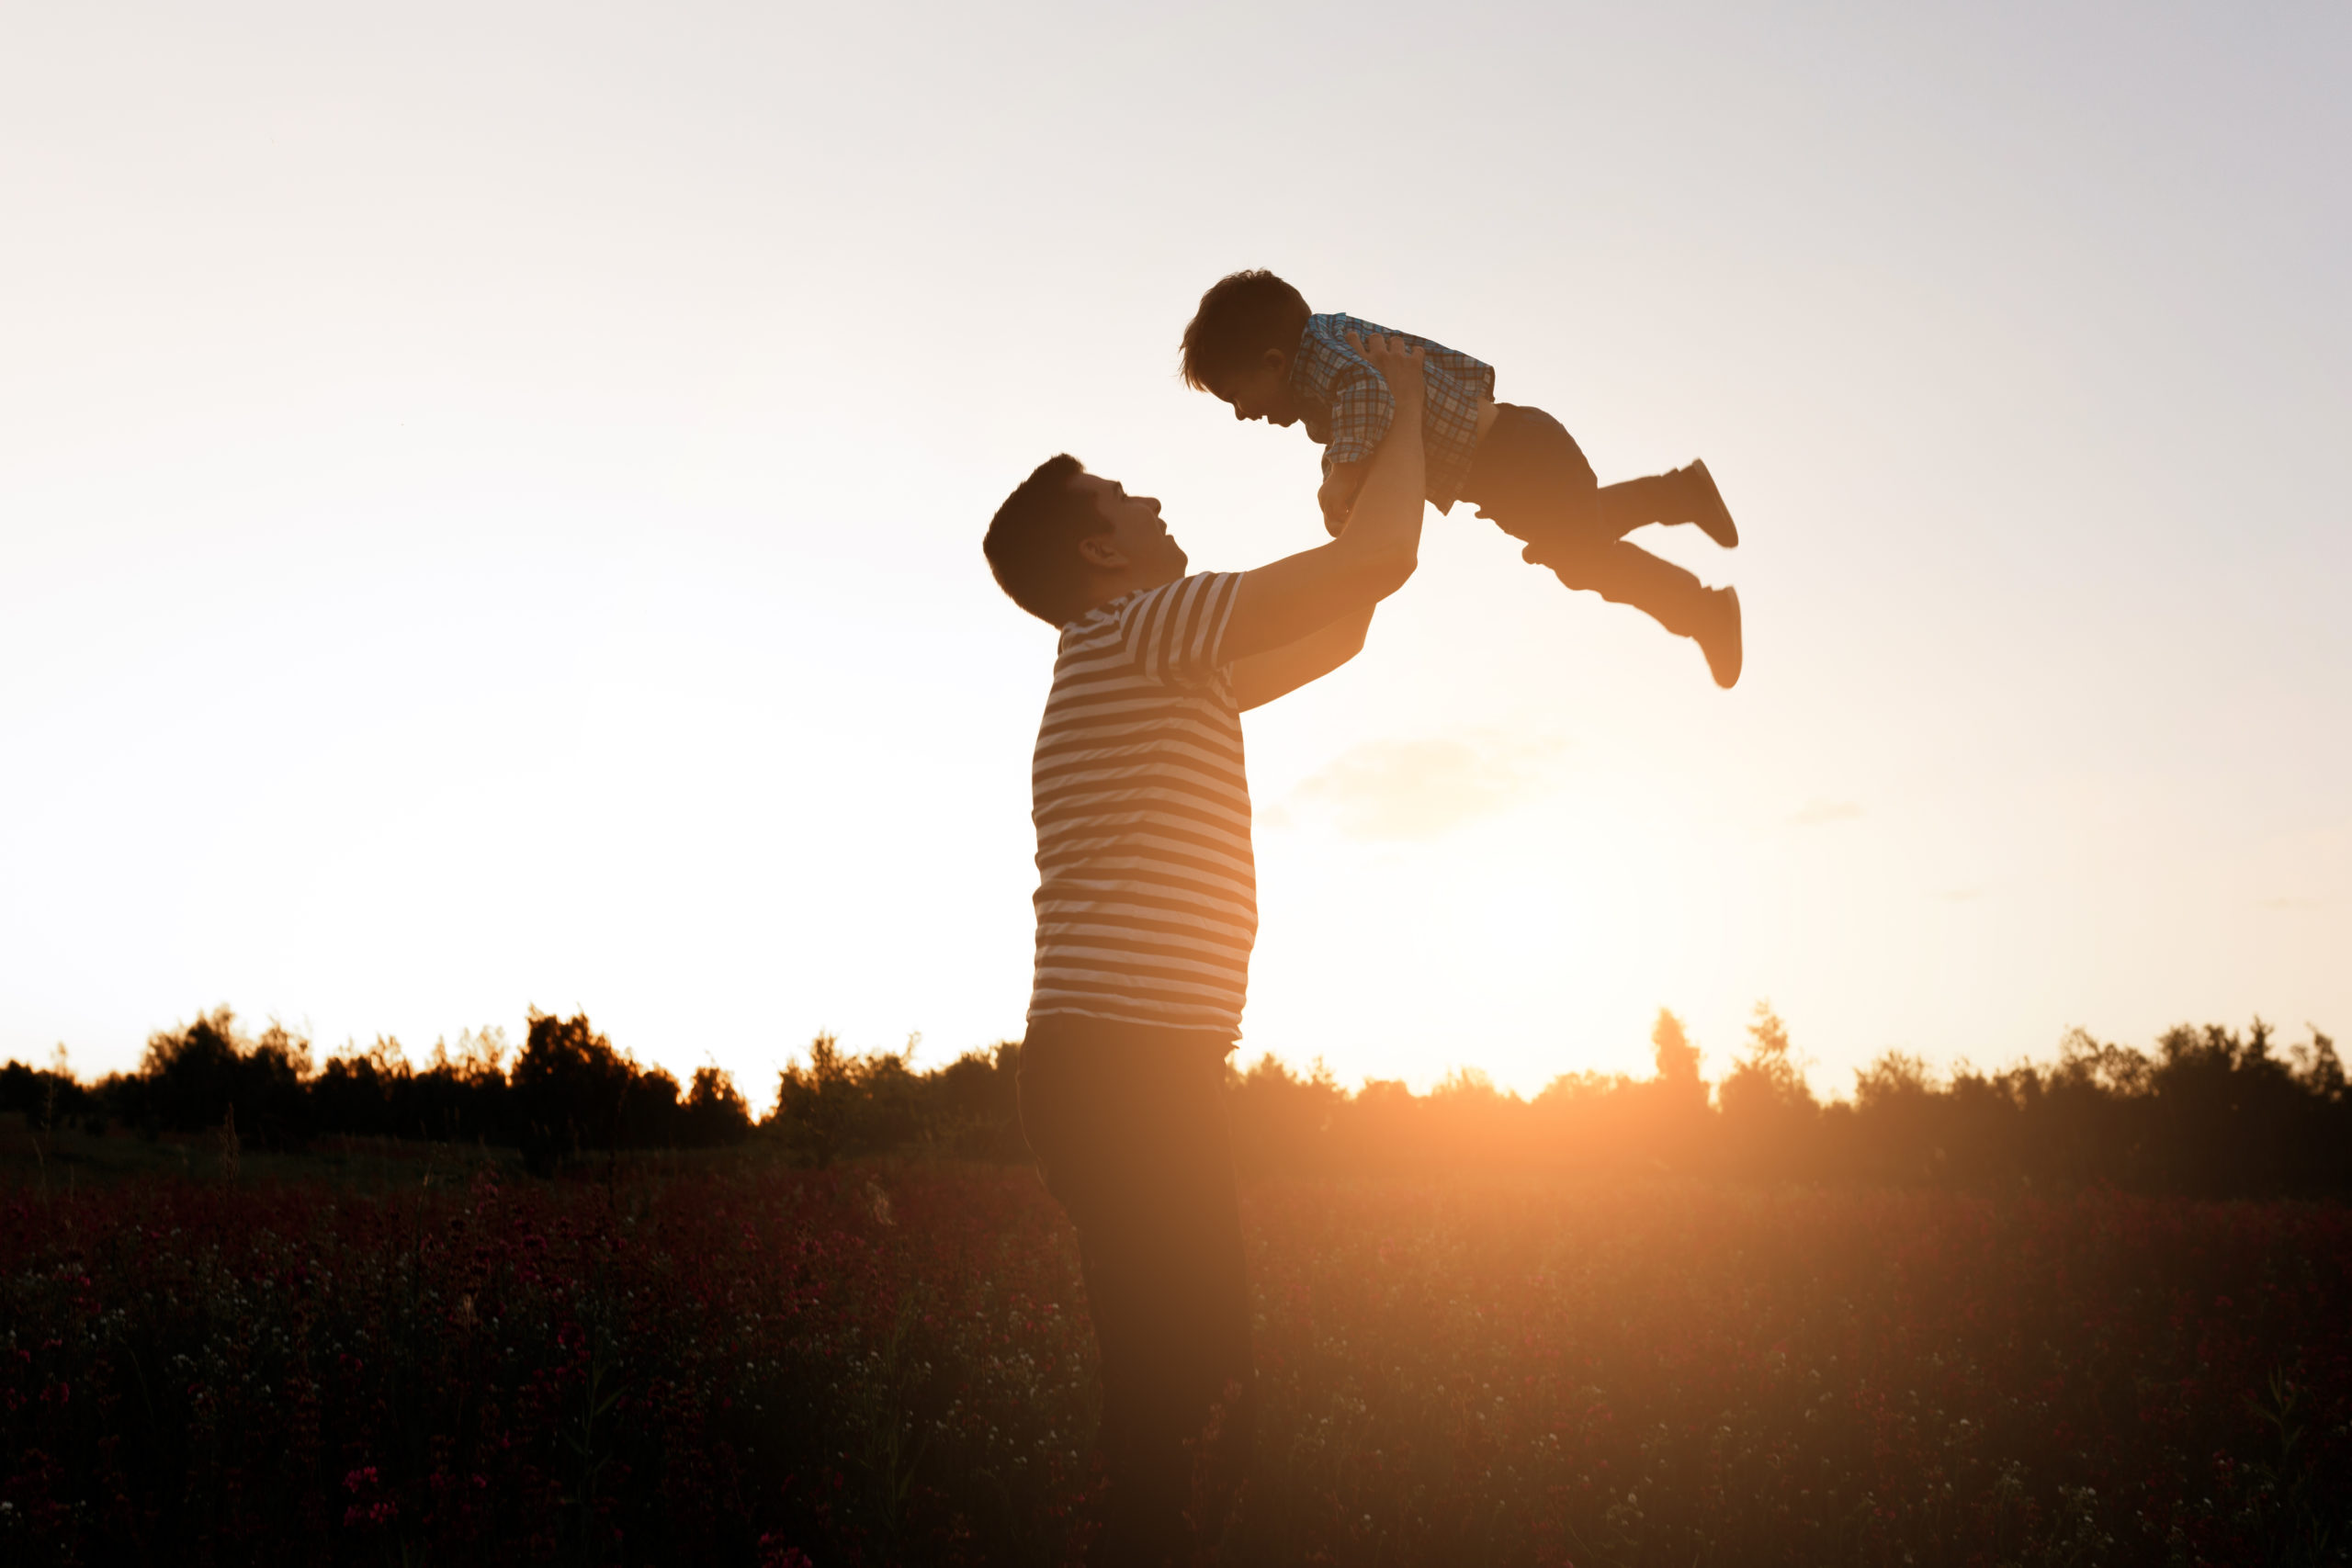 Establishing the fact of paternity after the death of the father